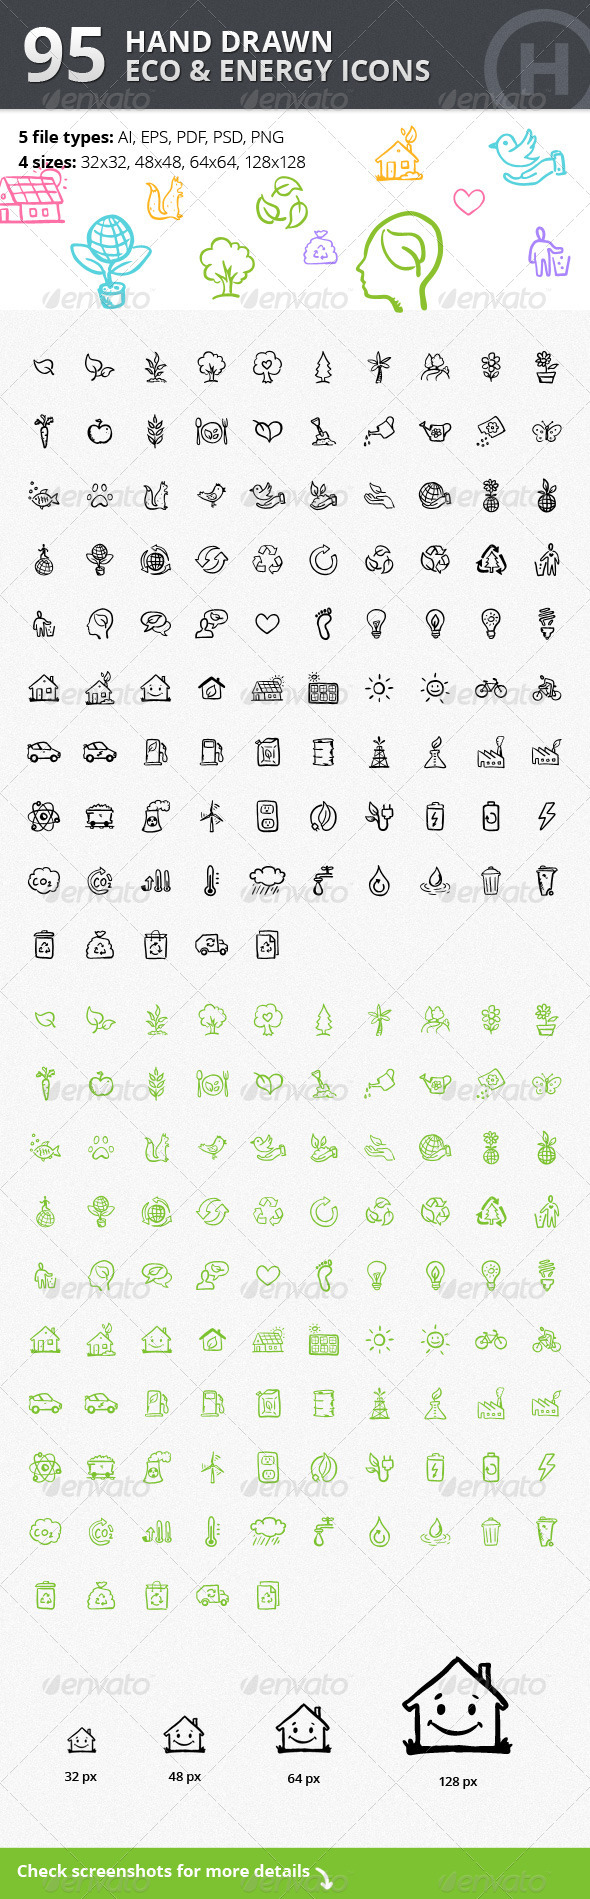 95 Hand-drawn Eco & Energy Icons - Web Icons